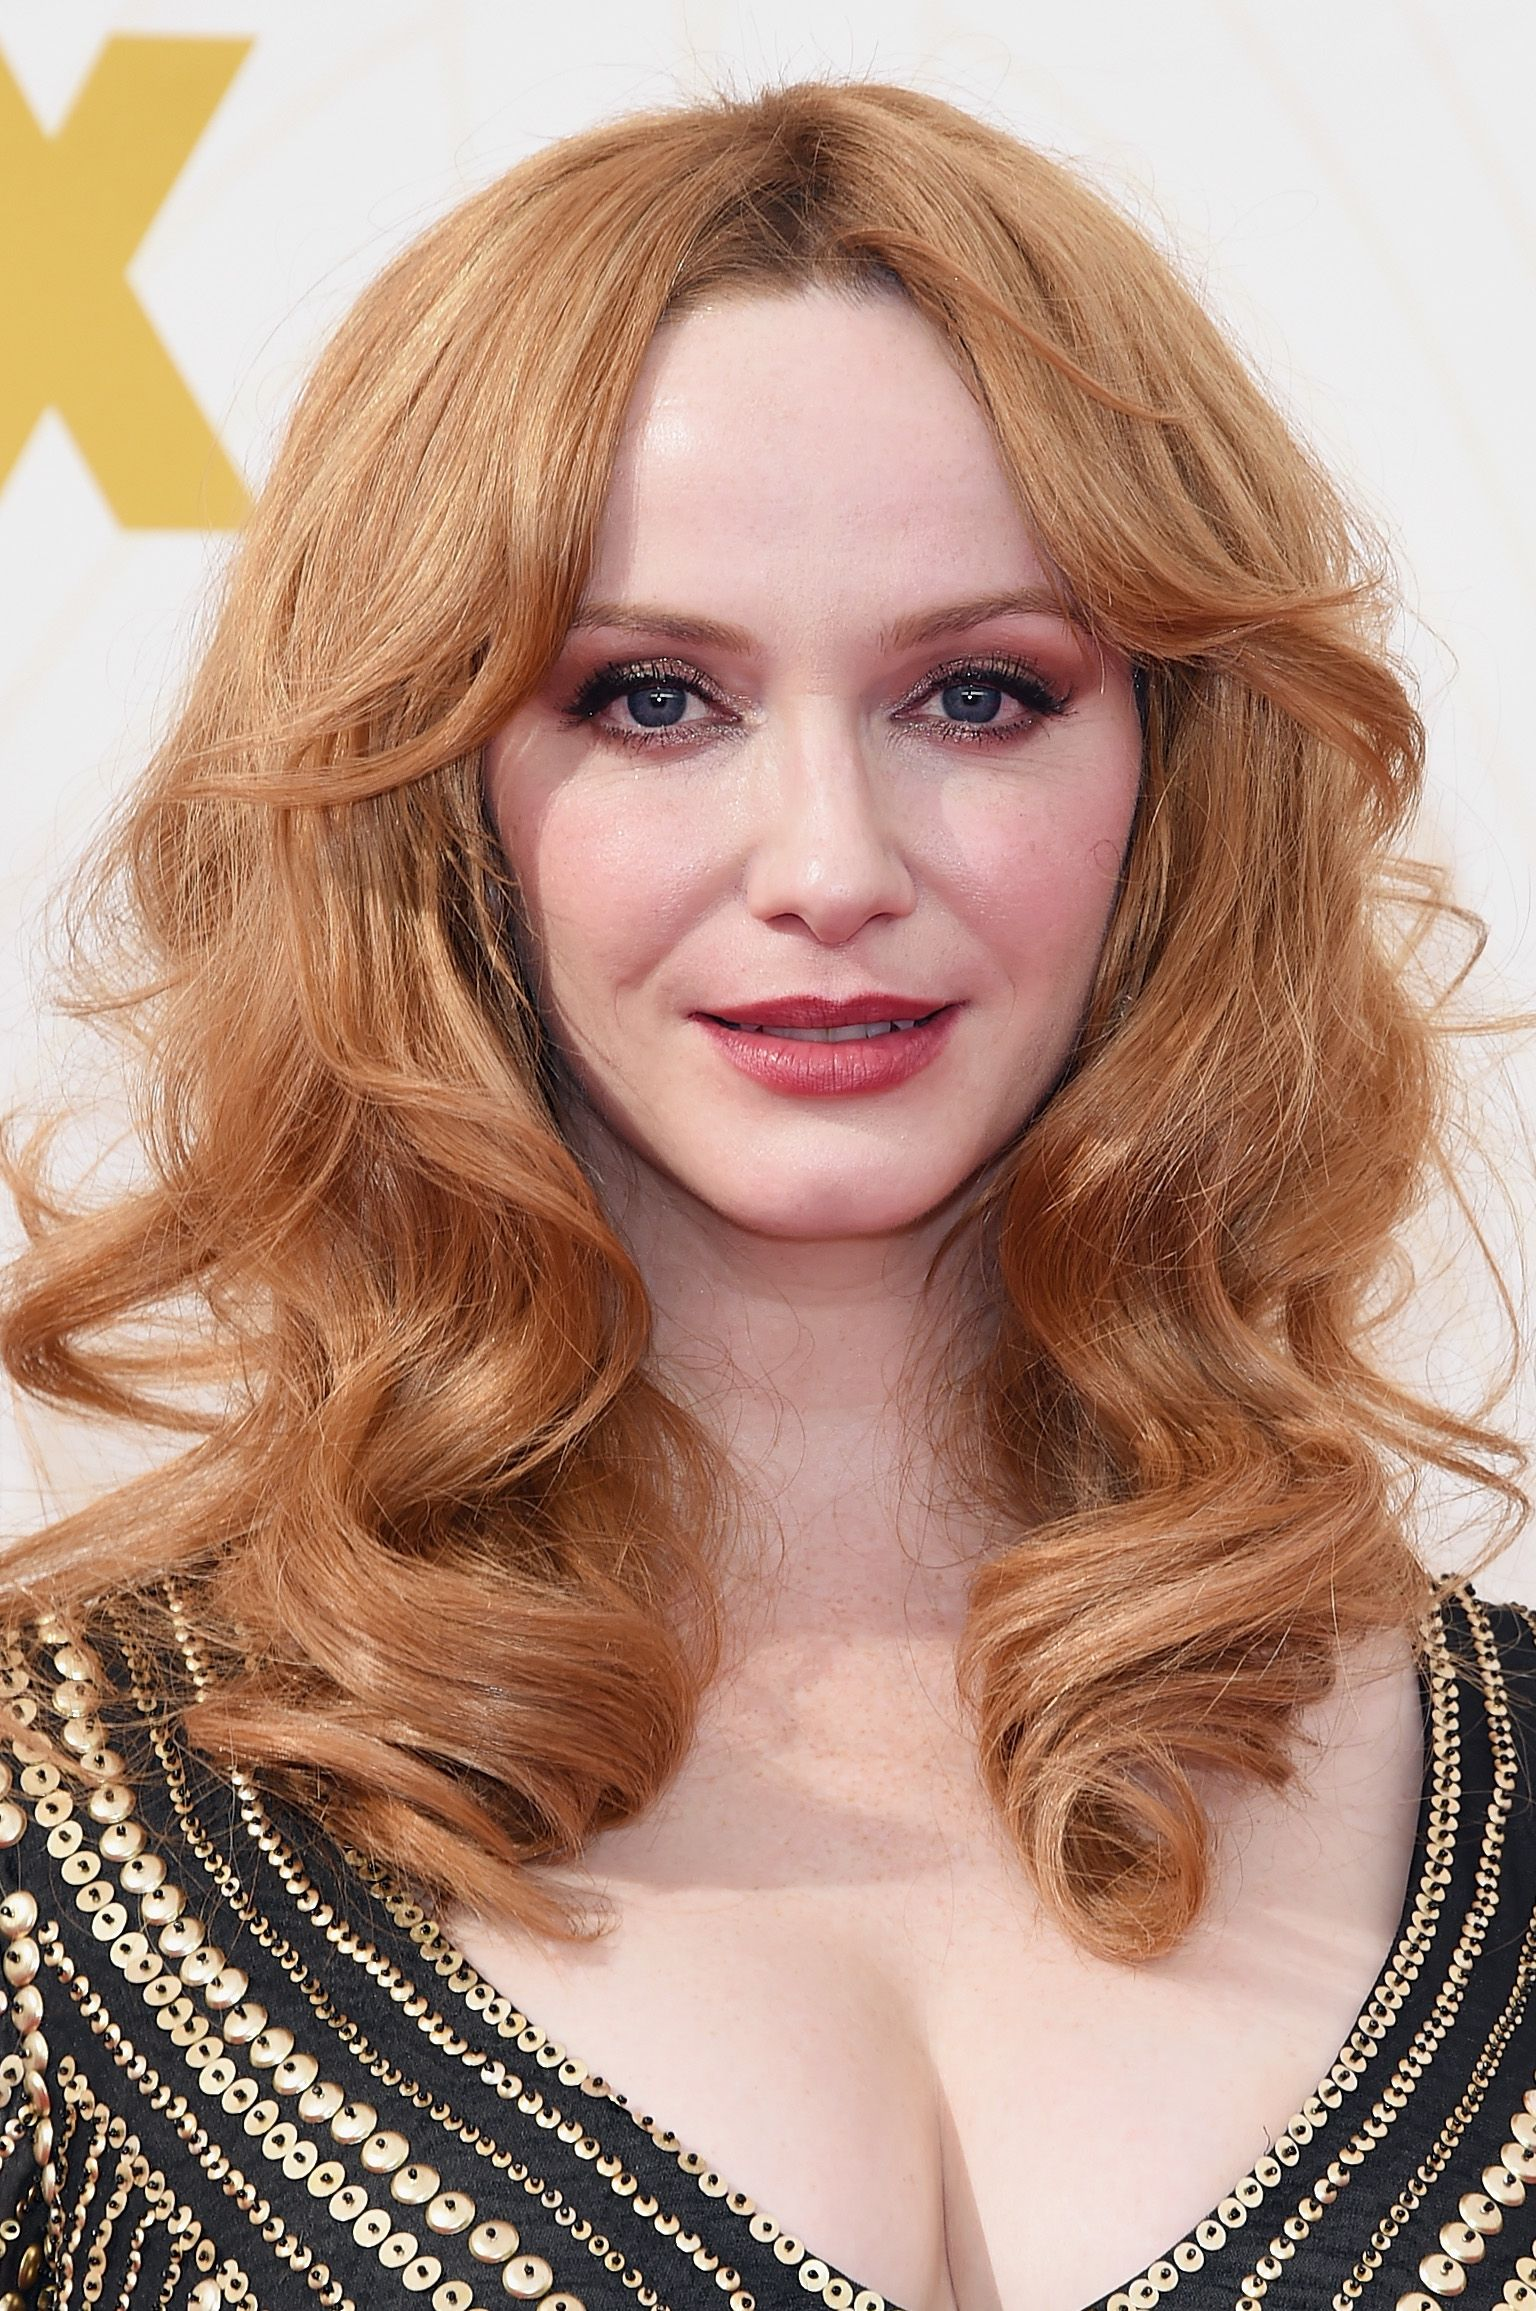 15 Strawberry Blonde Hair Color Ideas - Pictures of Strawberry Blond ...